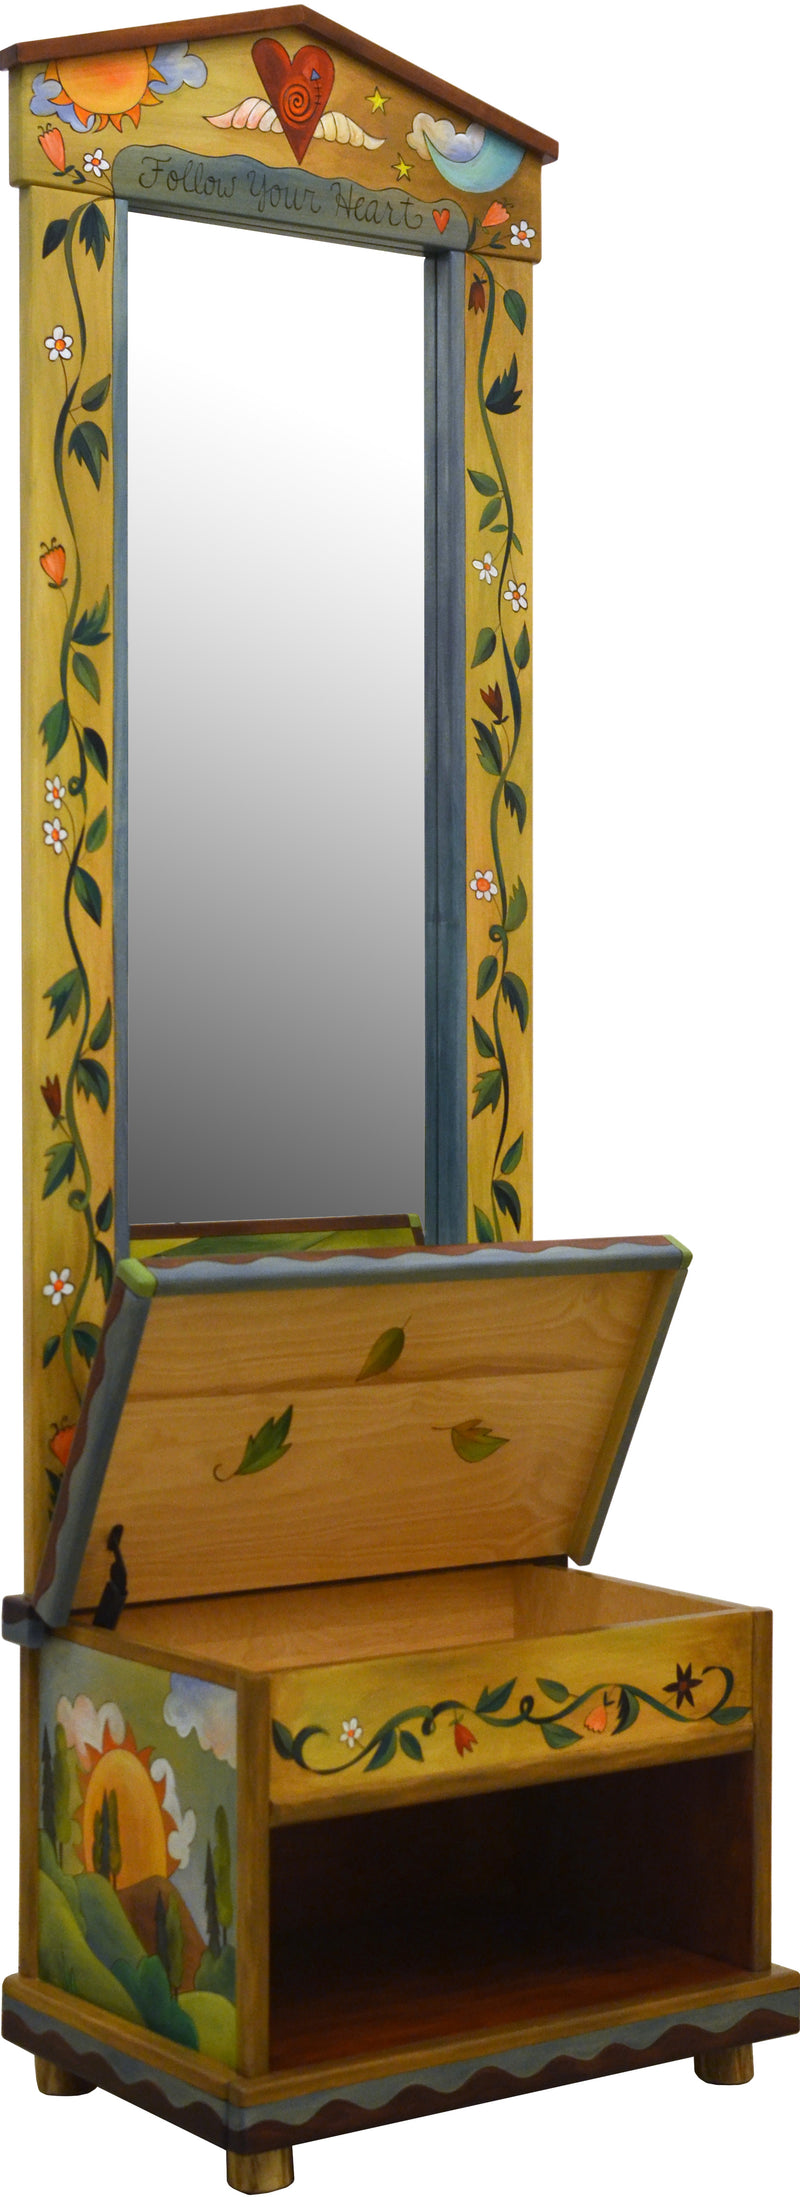 Hall Tree –  Beautiful folk art hall tree with mirror and storage bench featuring landscape paintings, a heart with wings at the top, and a sun and moon motif